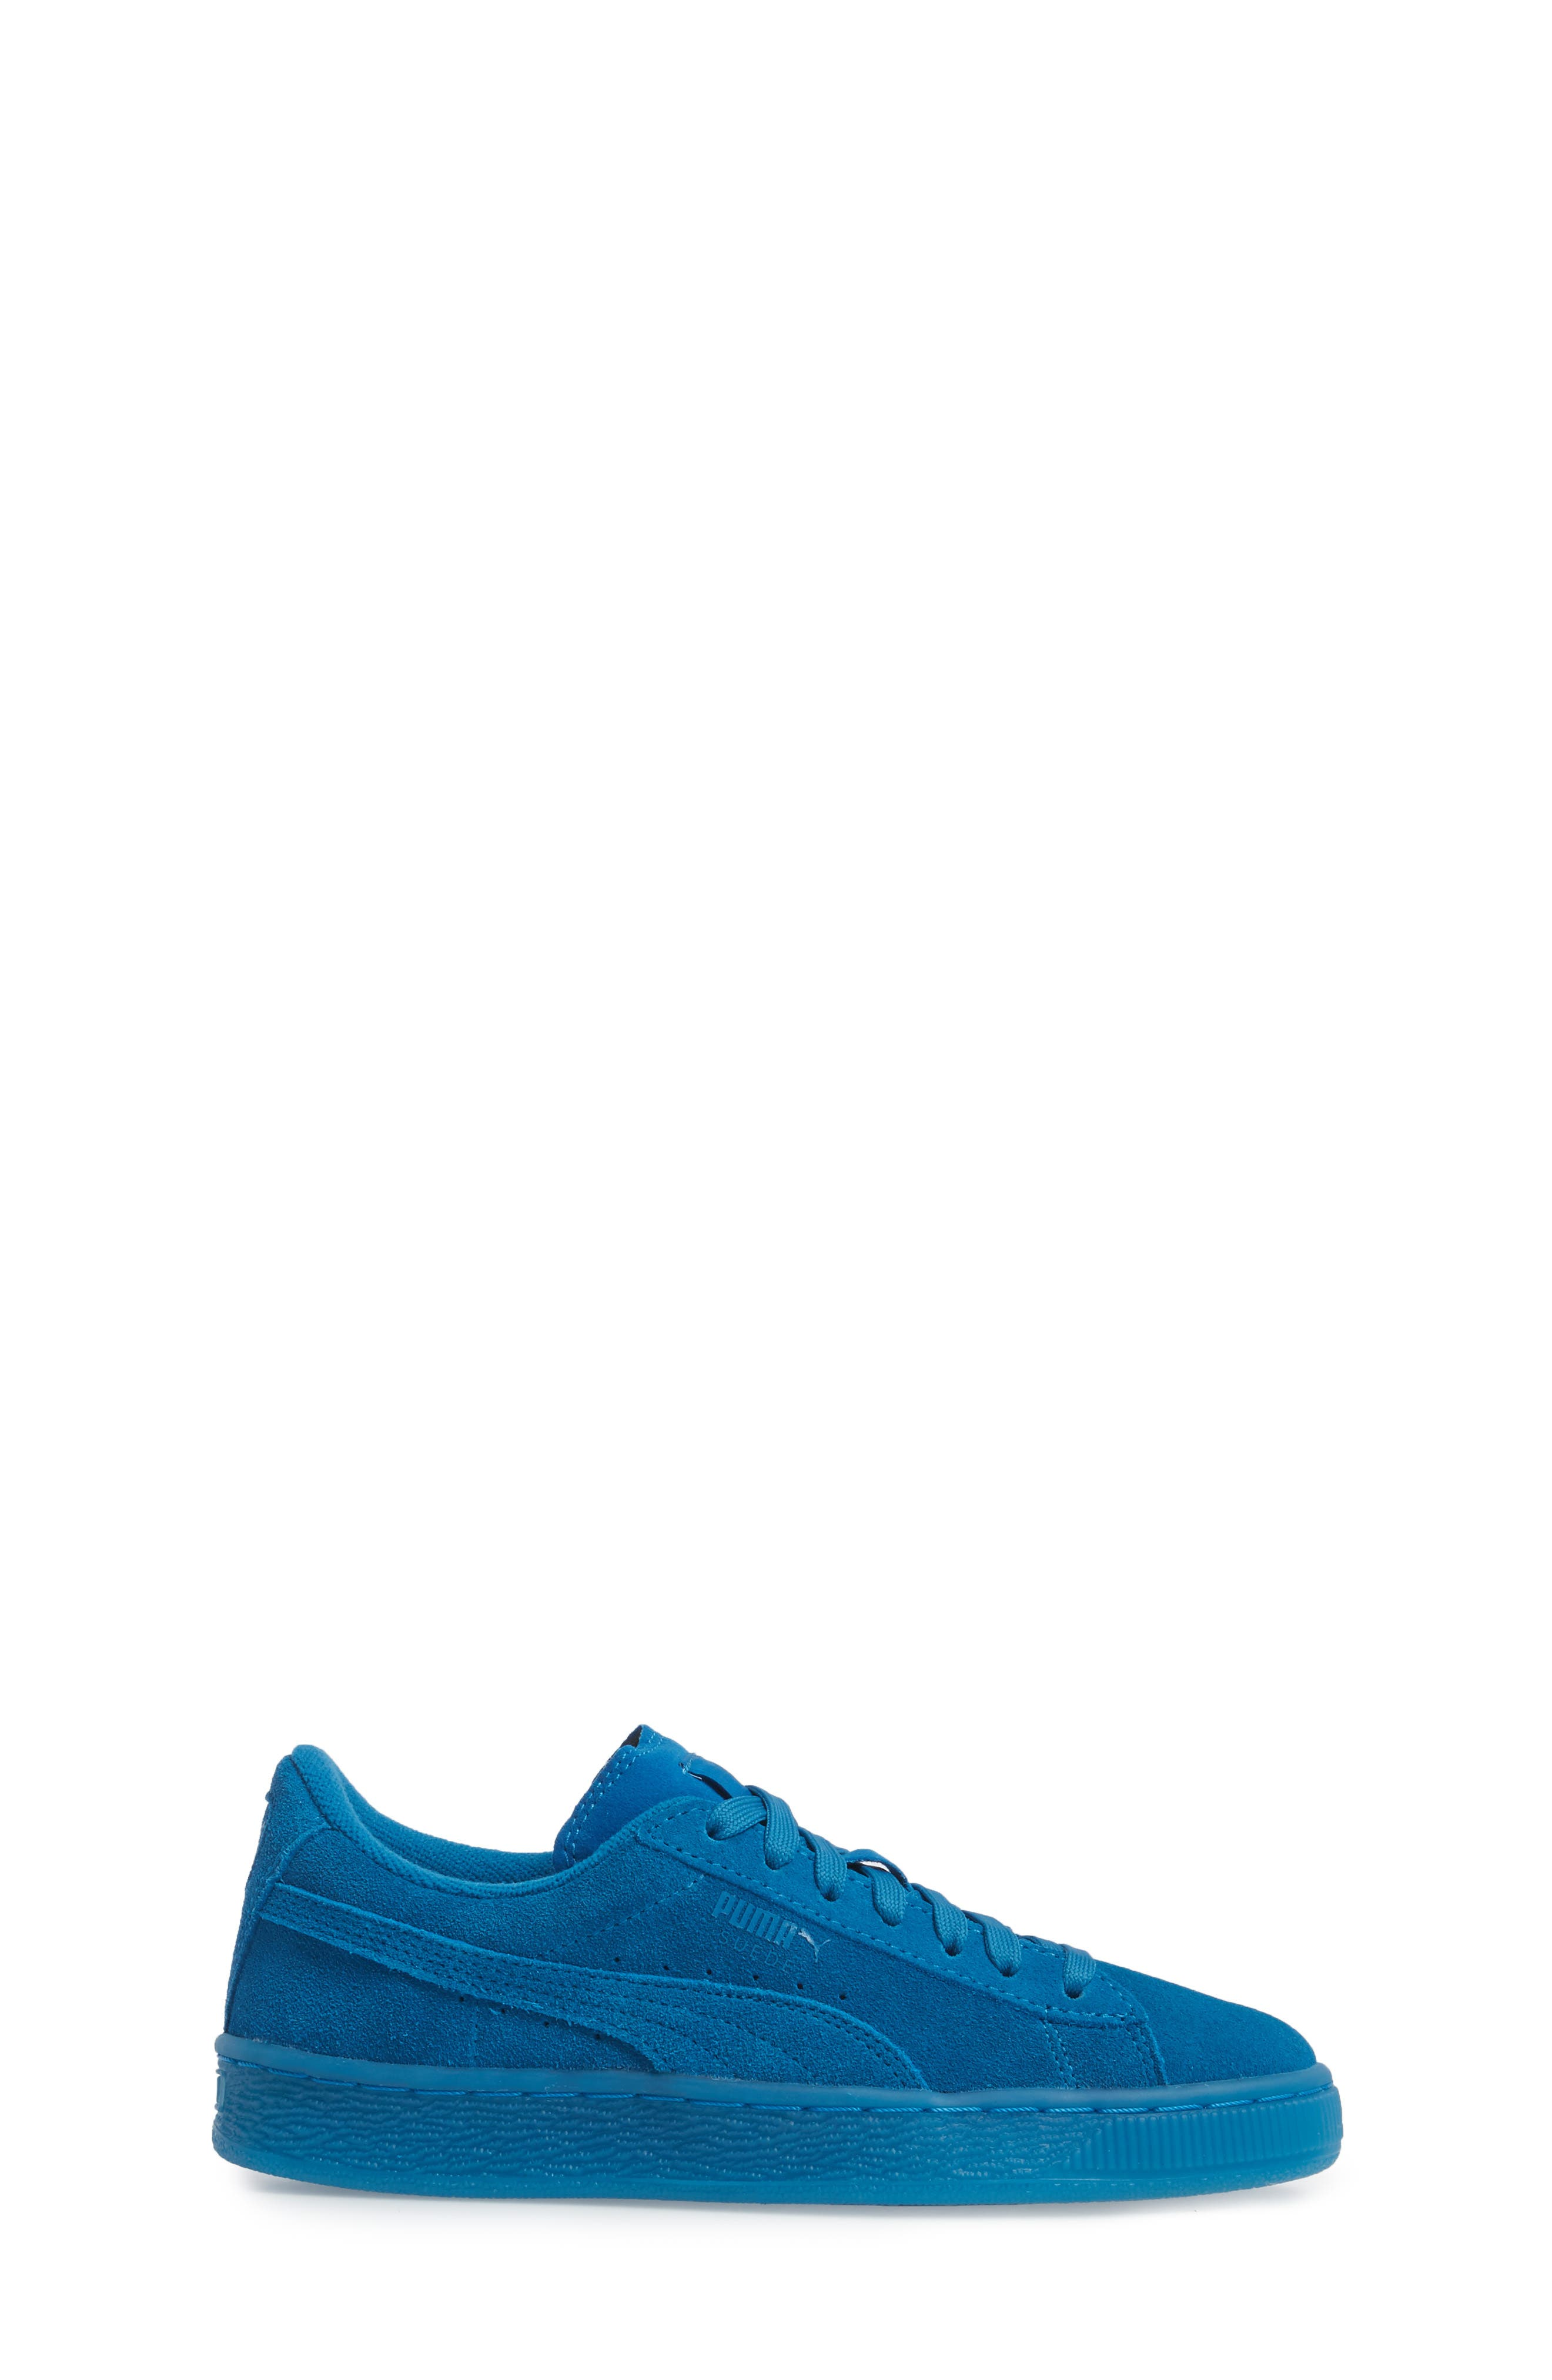 'Suede Iced' Sneaker,                             Alternate thumbnail 3, color,                             460